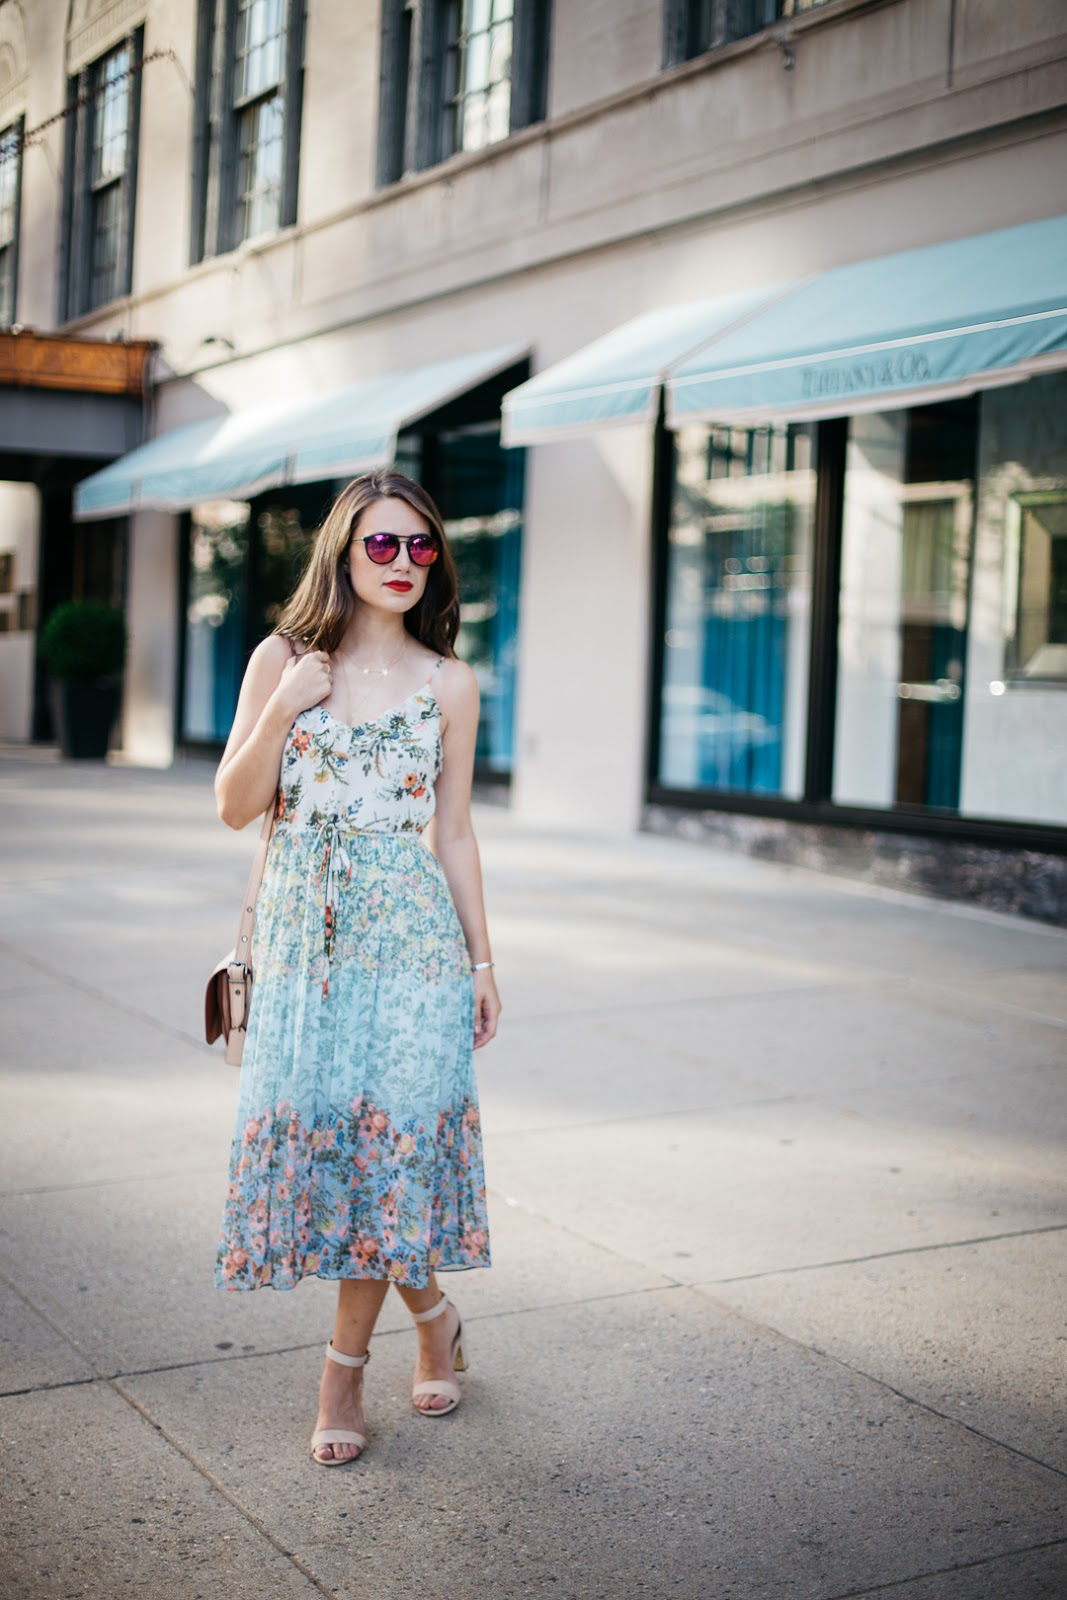 Pairing my favorite floral dress from Oasis with nude block heels for a chic yet comfortable look